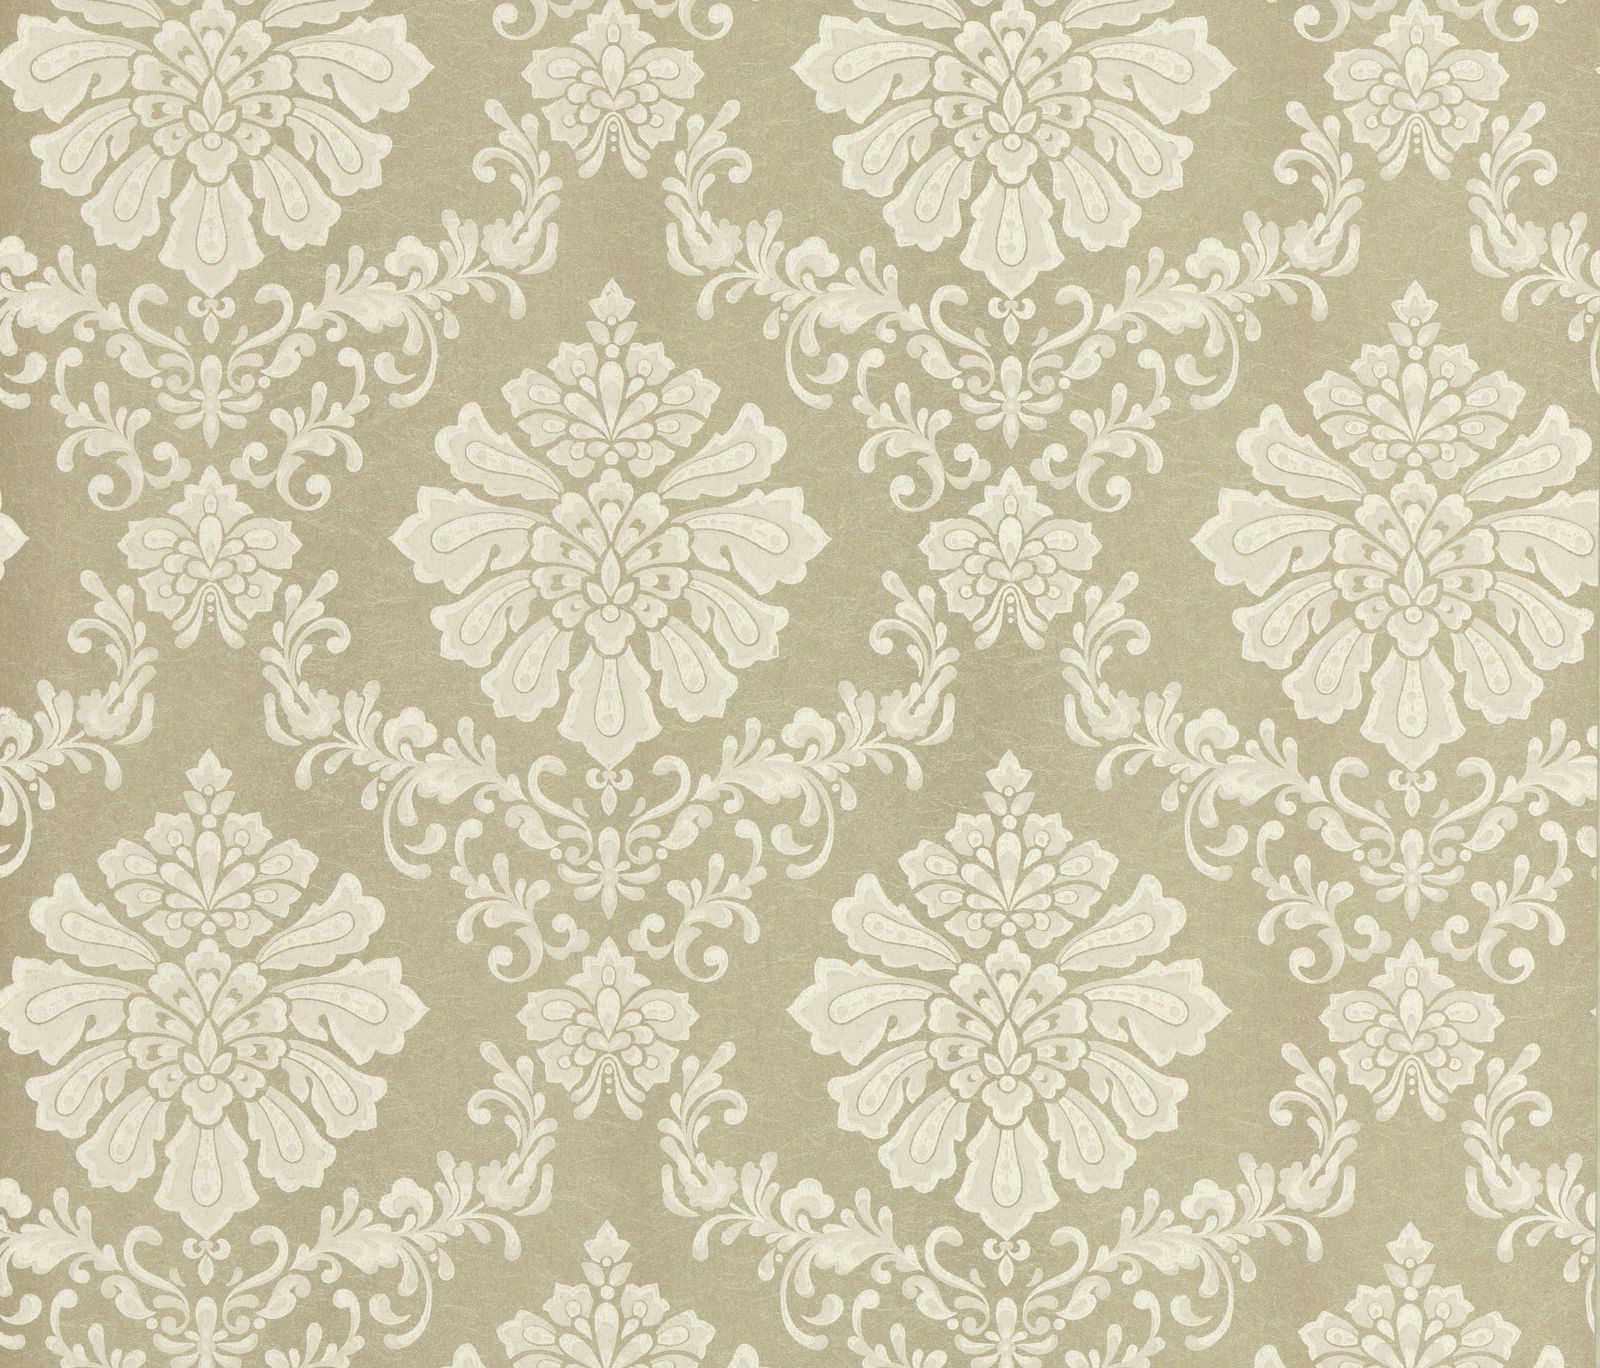 Tapetti 1838 Wallcoverings Broughton kulta 0,52x10,05 m